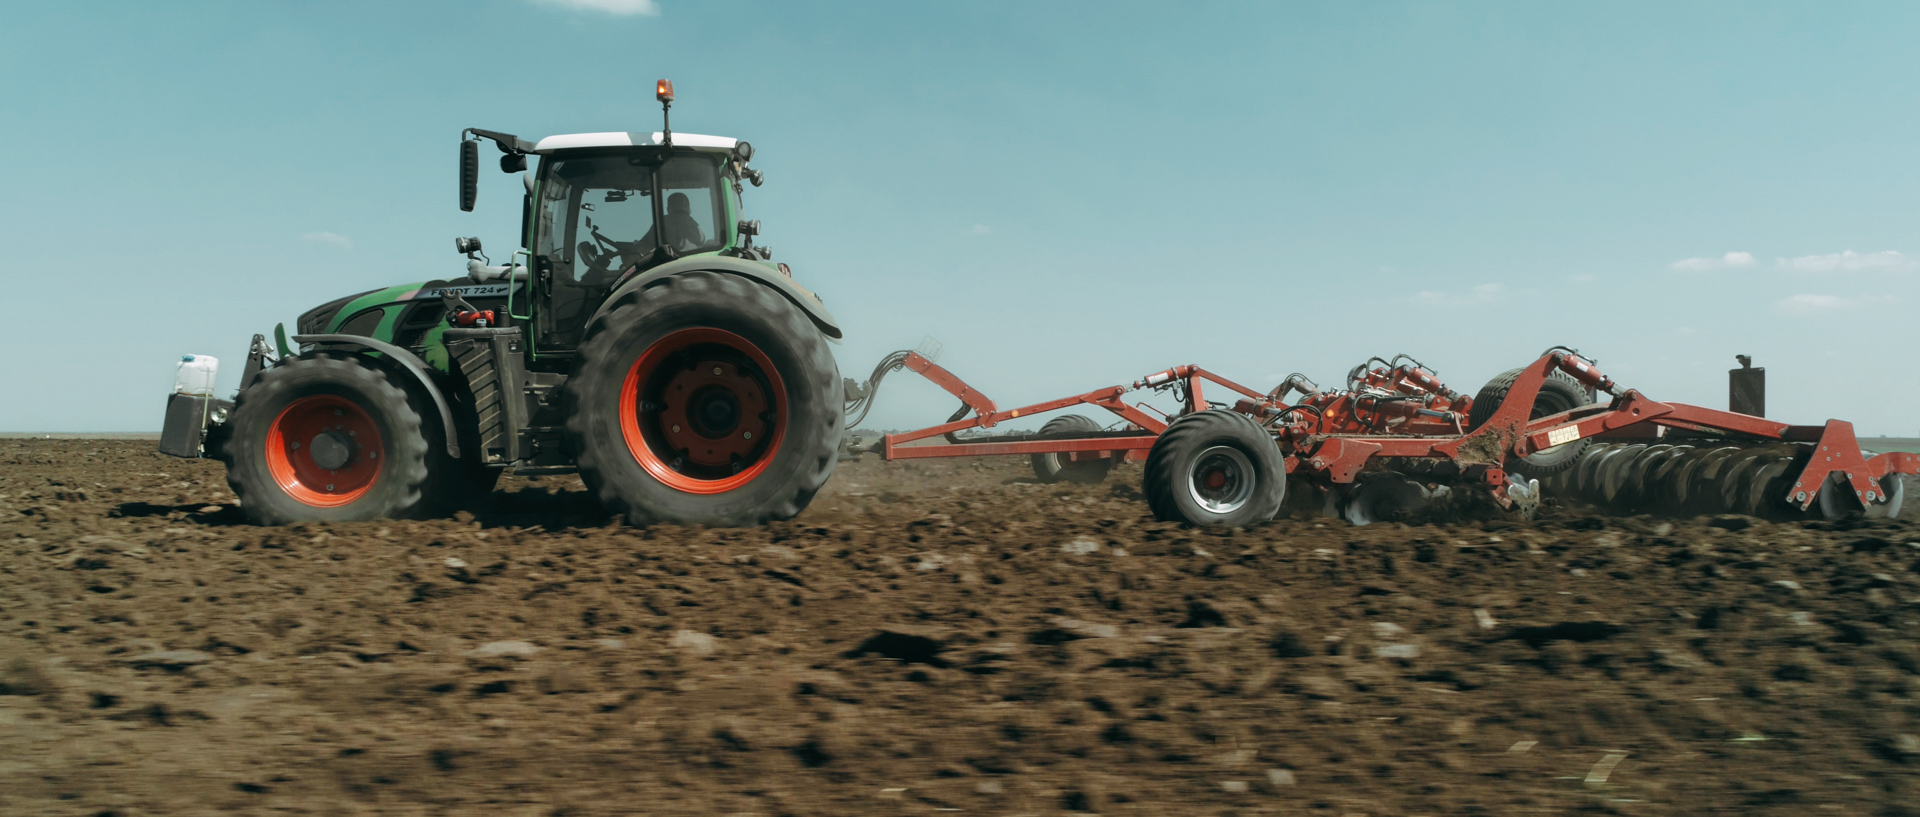 fendt tractor with horsch for mewi the farmers video by popotam productions video agency timisoara after color grading